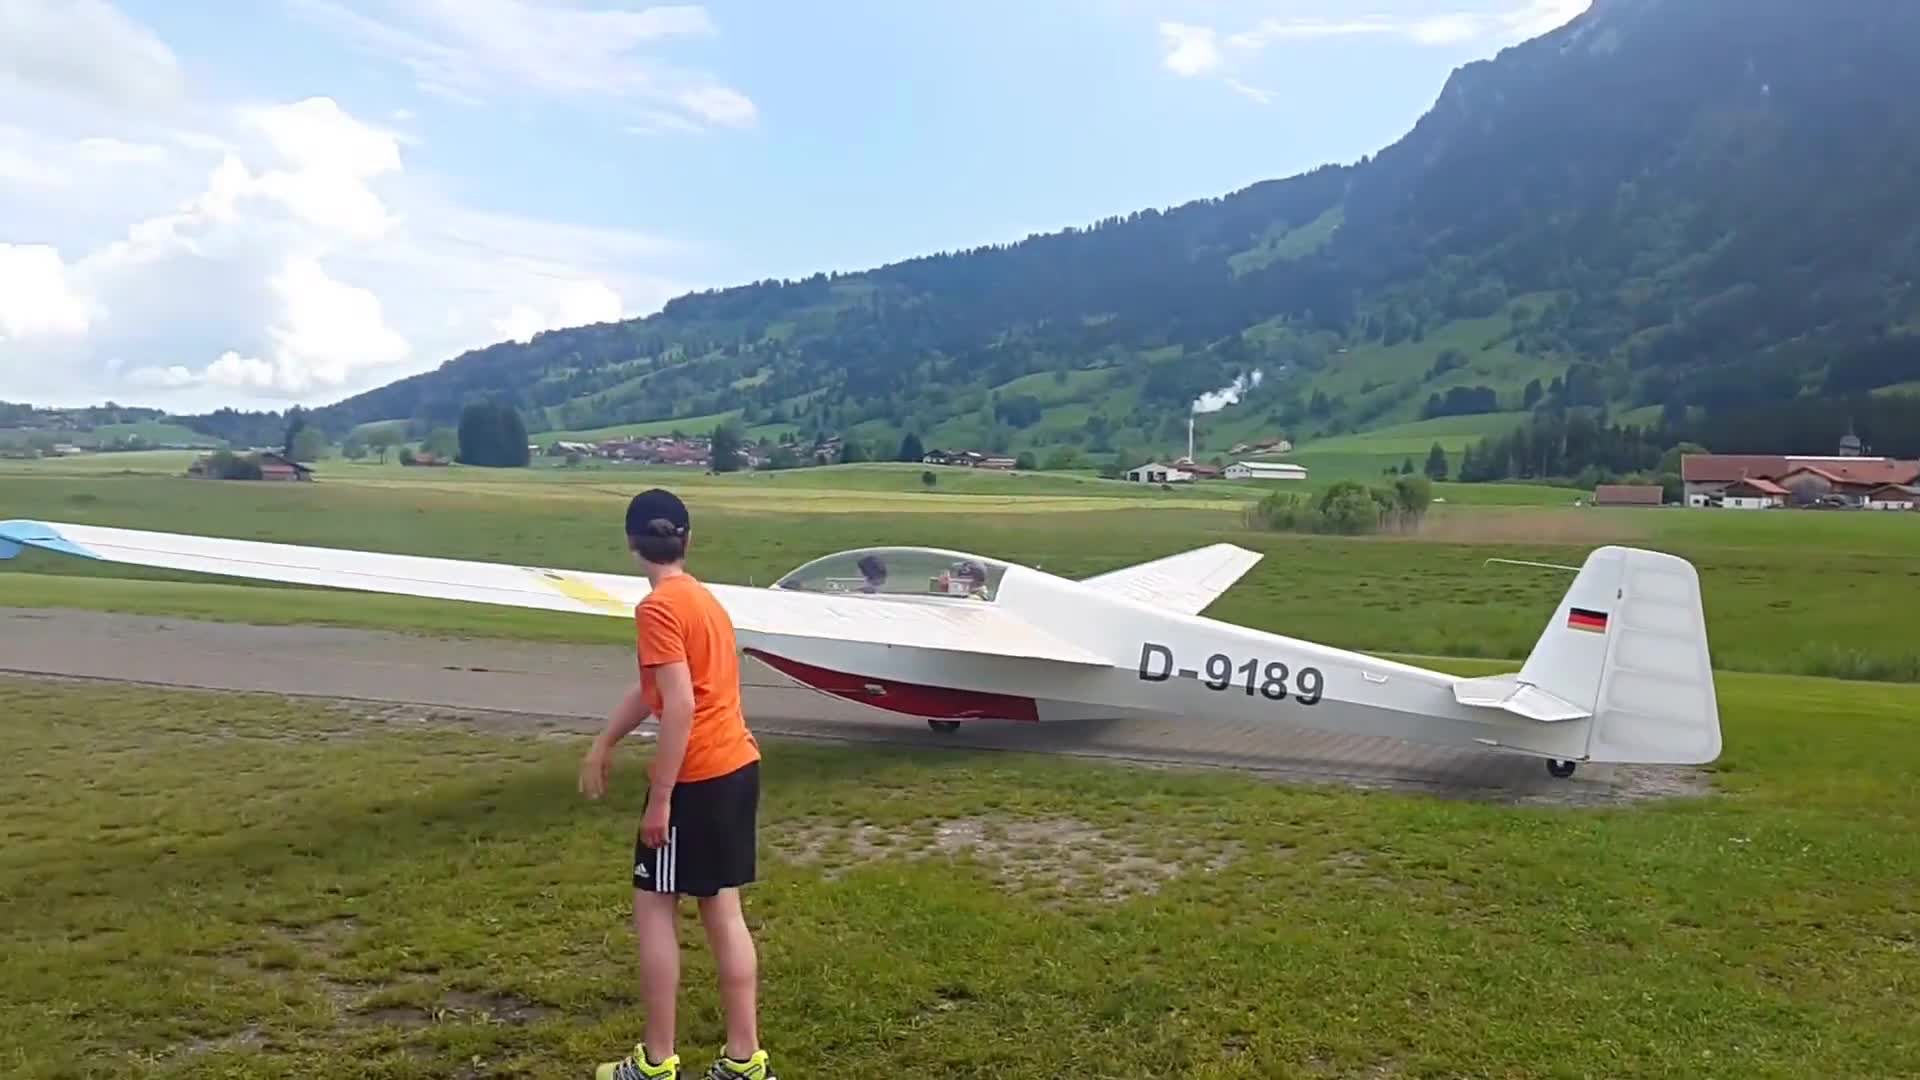 Video of a kid flying a glider